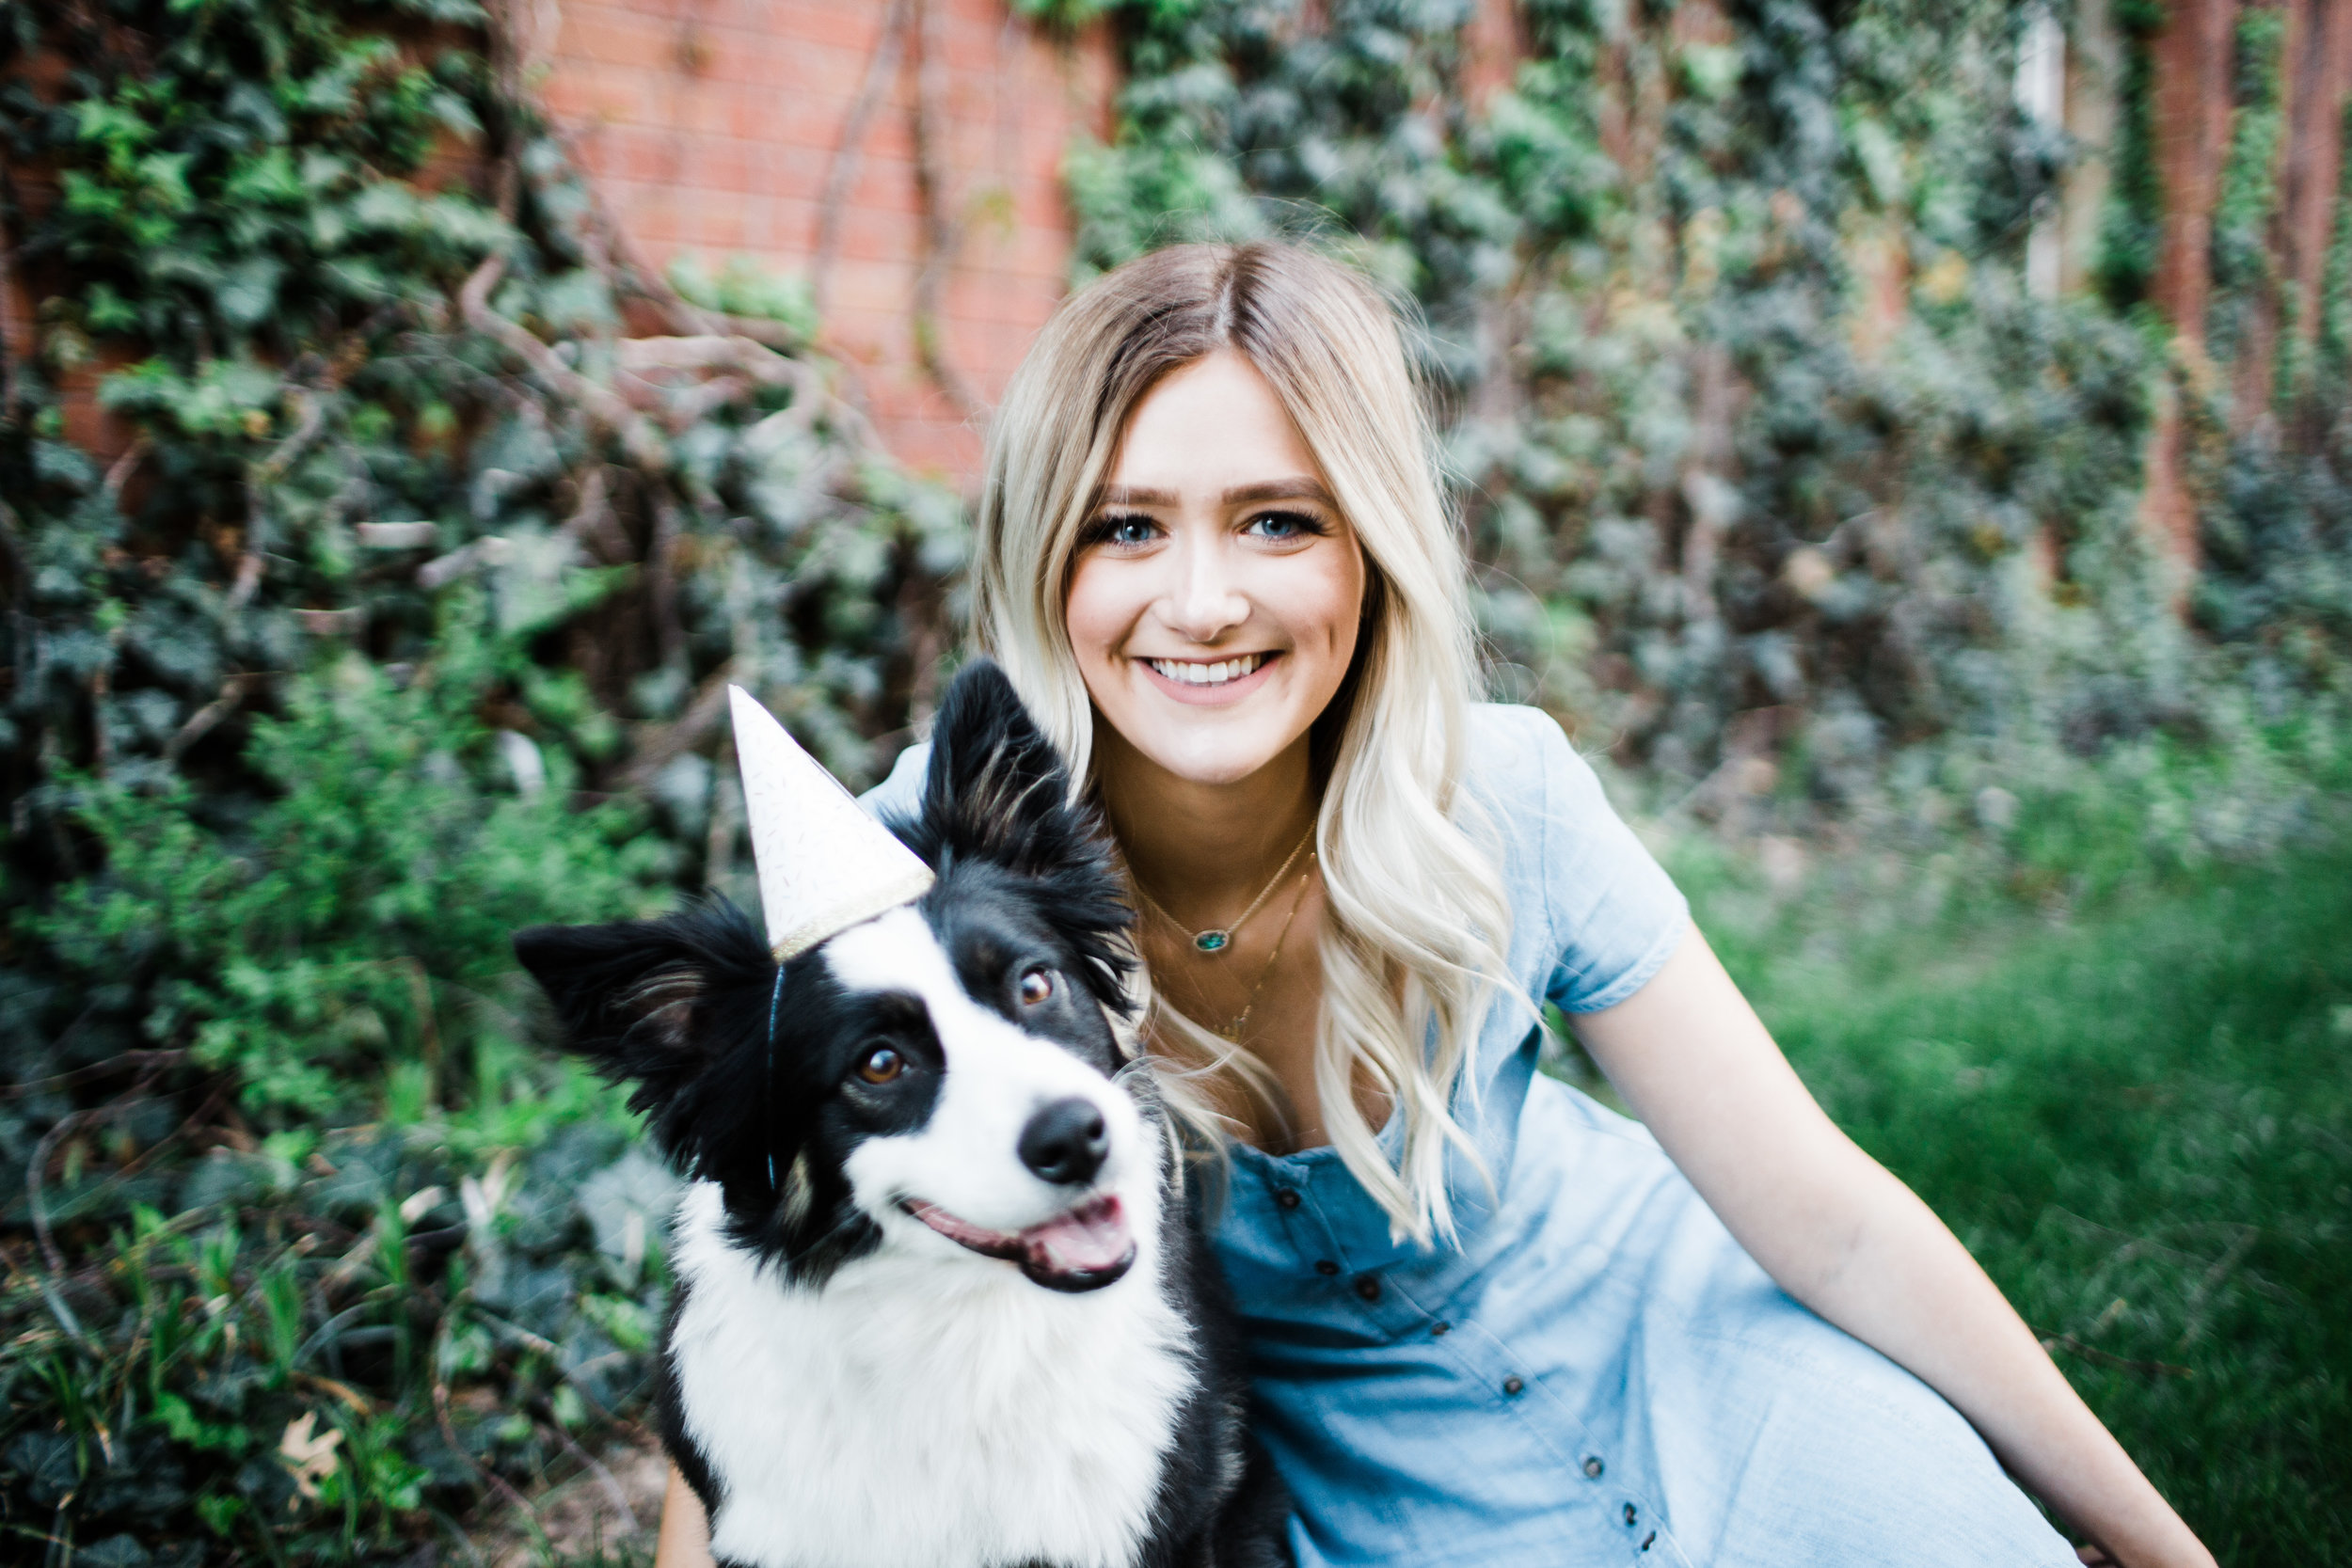 Senior pictures with dog.